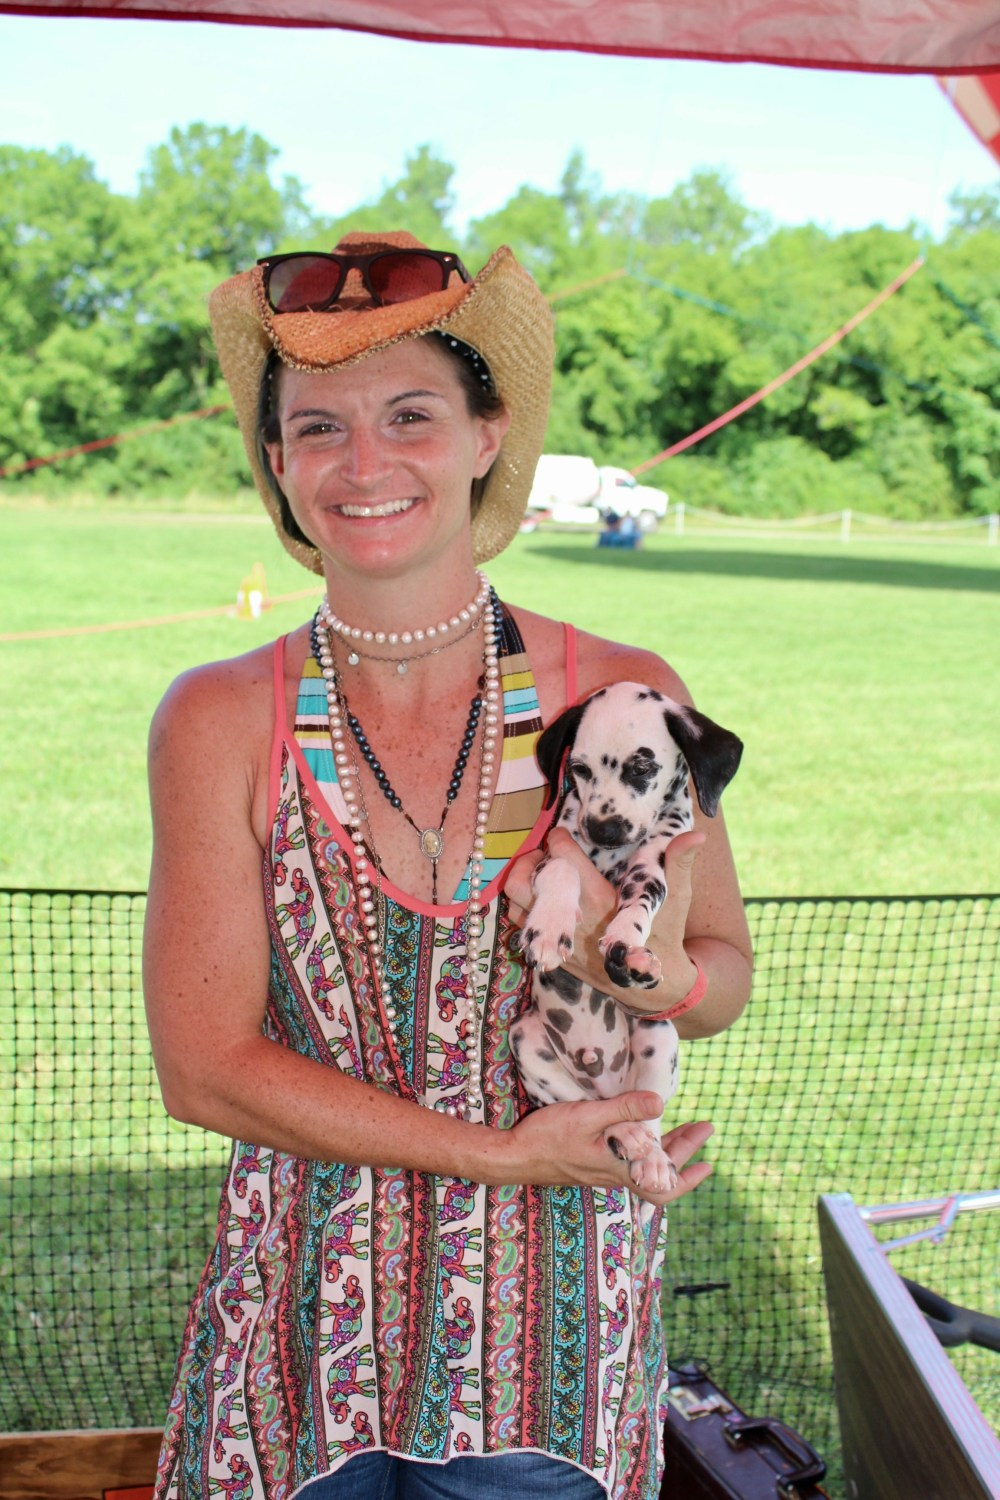 Lady with Dalmation puppy at Victory Cup Nashville